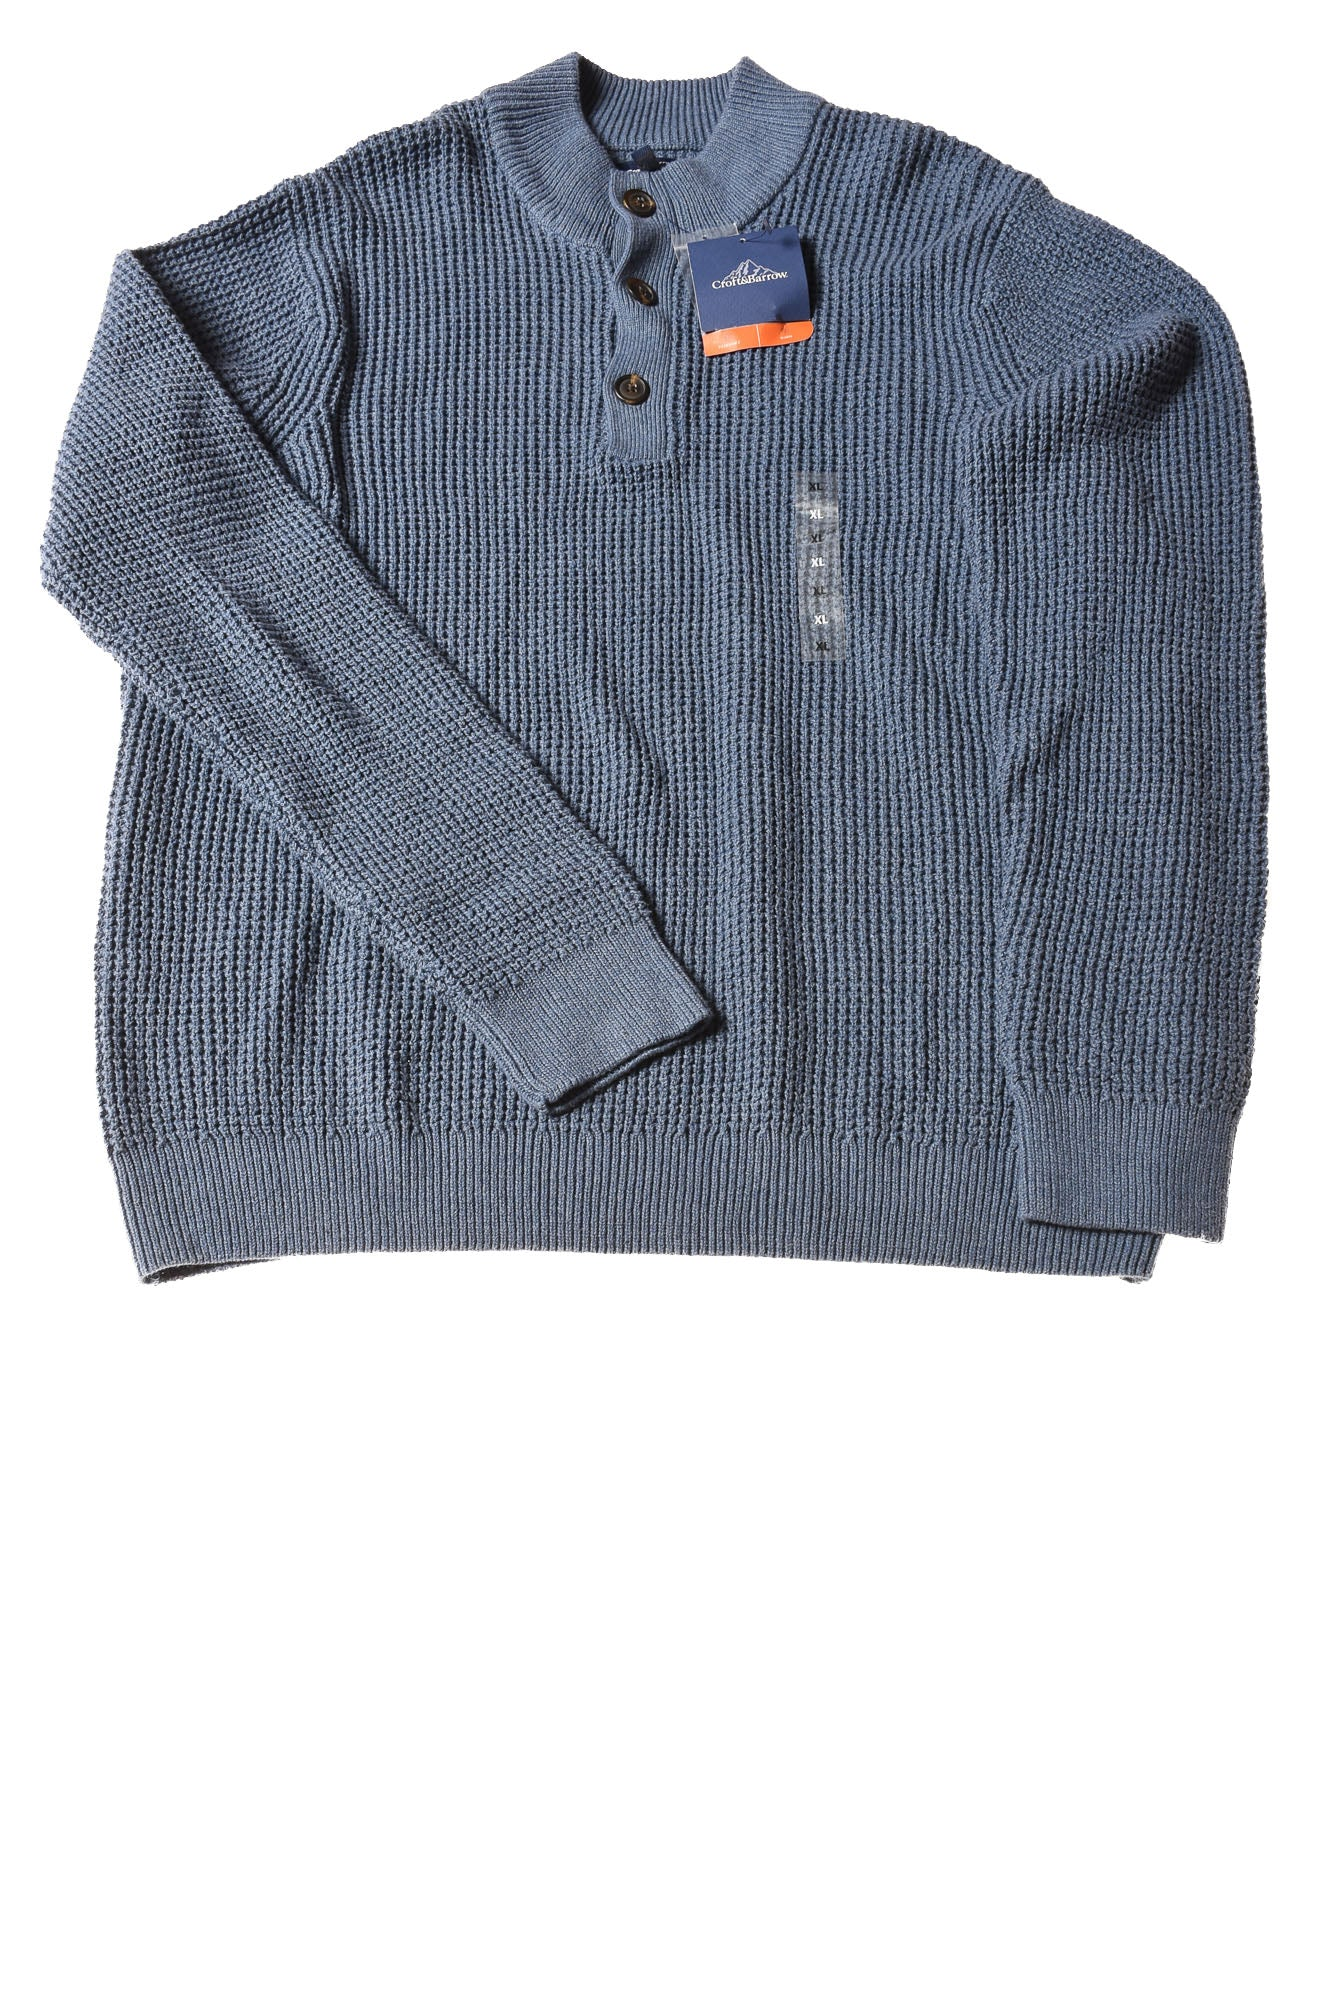 ada0cd5968ee3d NEW Croft   Barrow Men s Sweater X-Large Blue - Village Discount Outlet